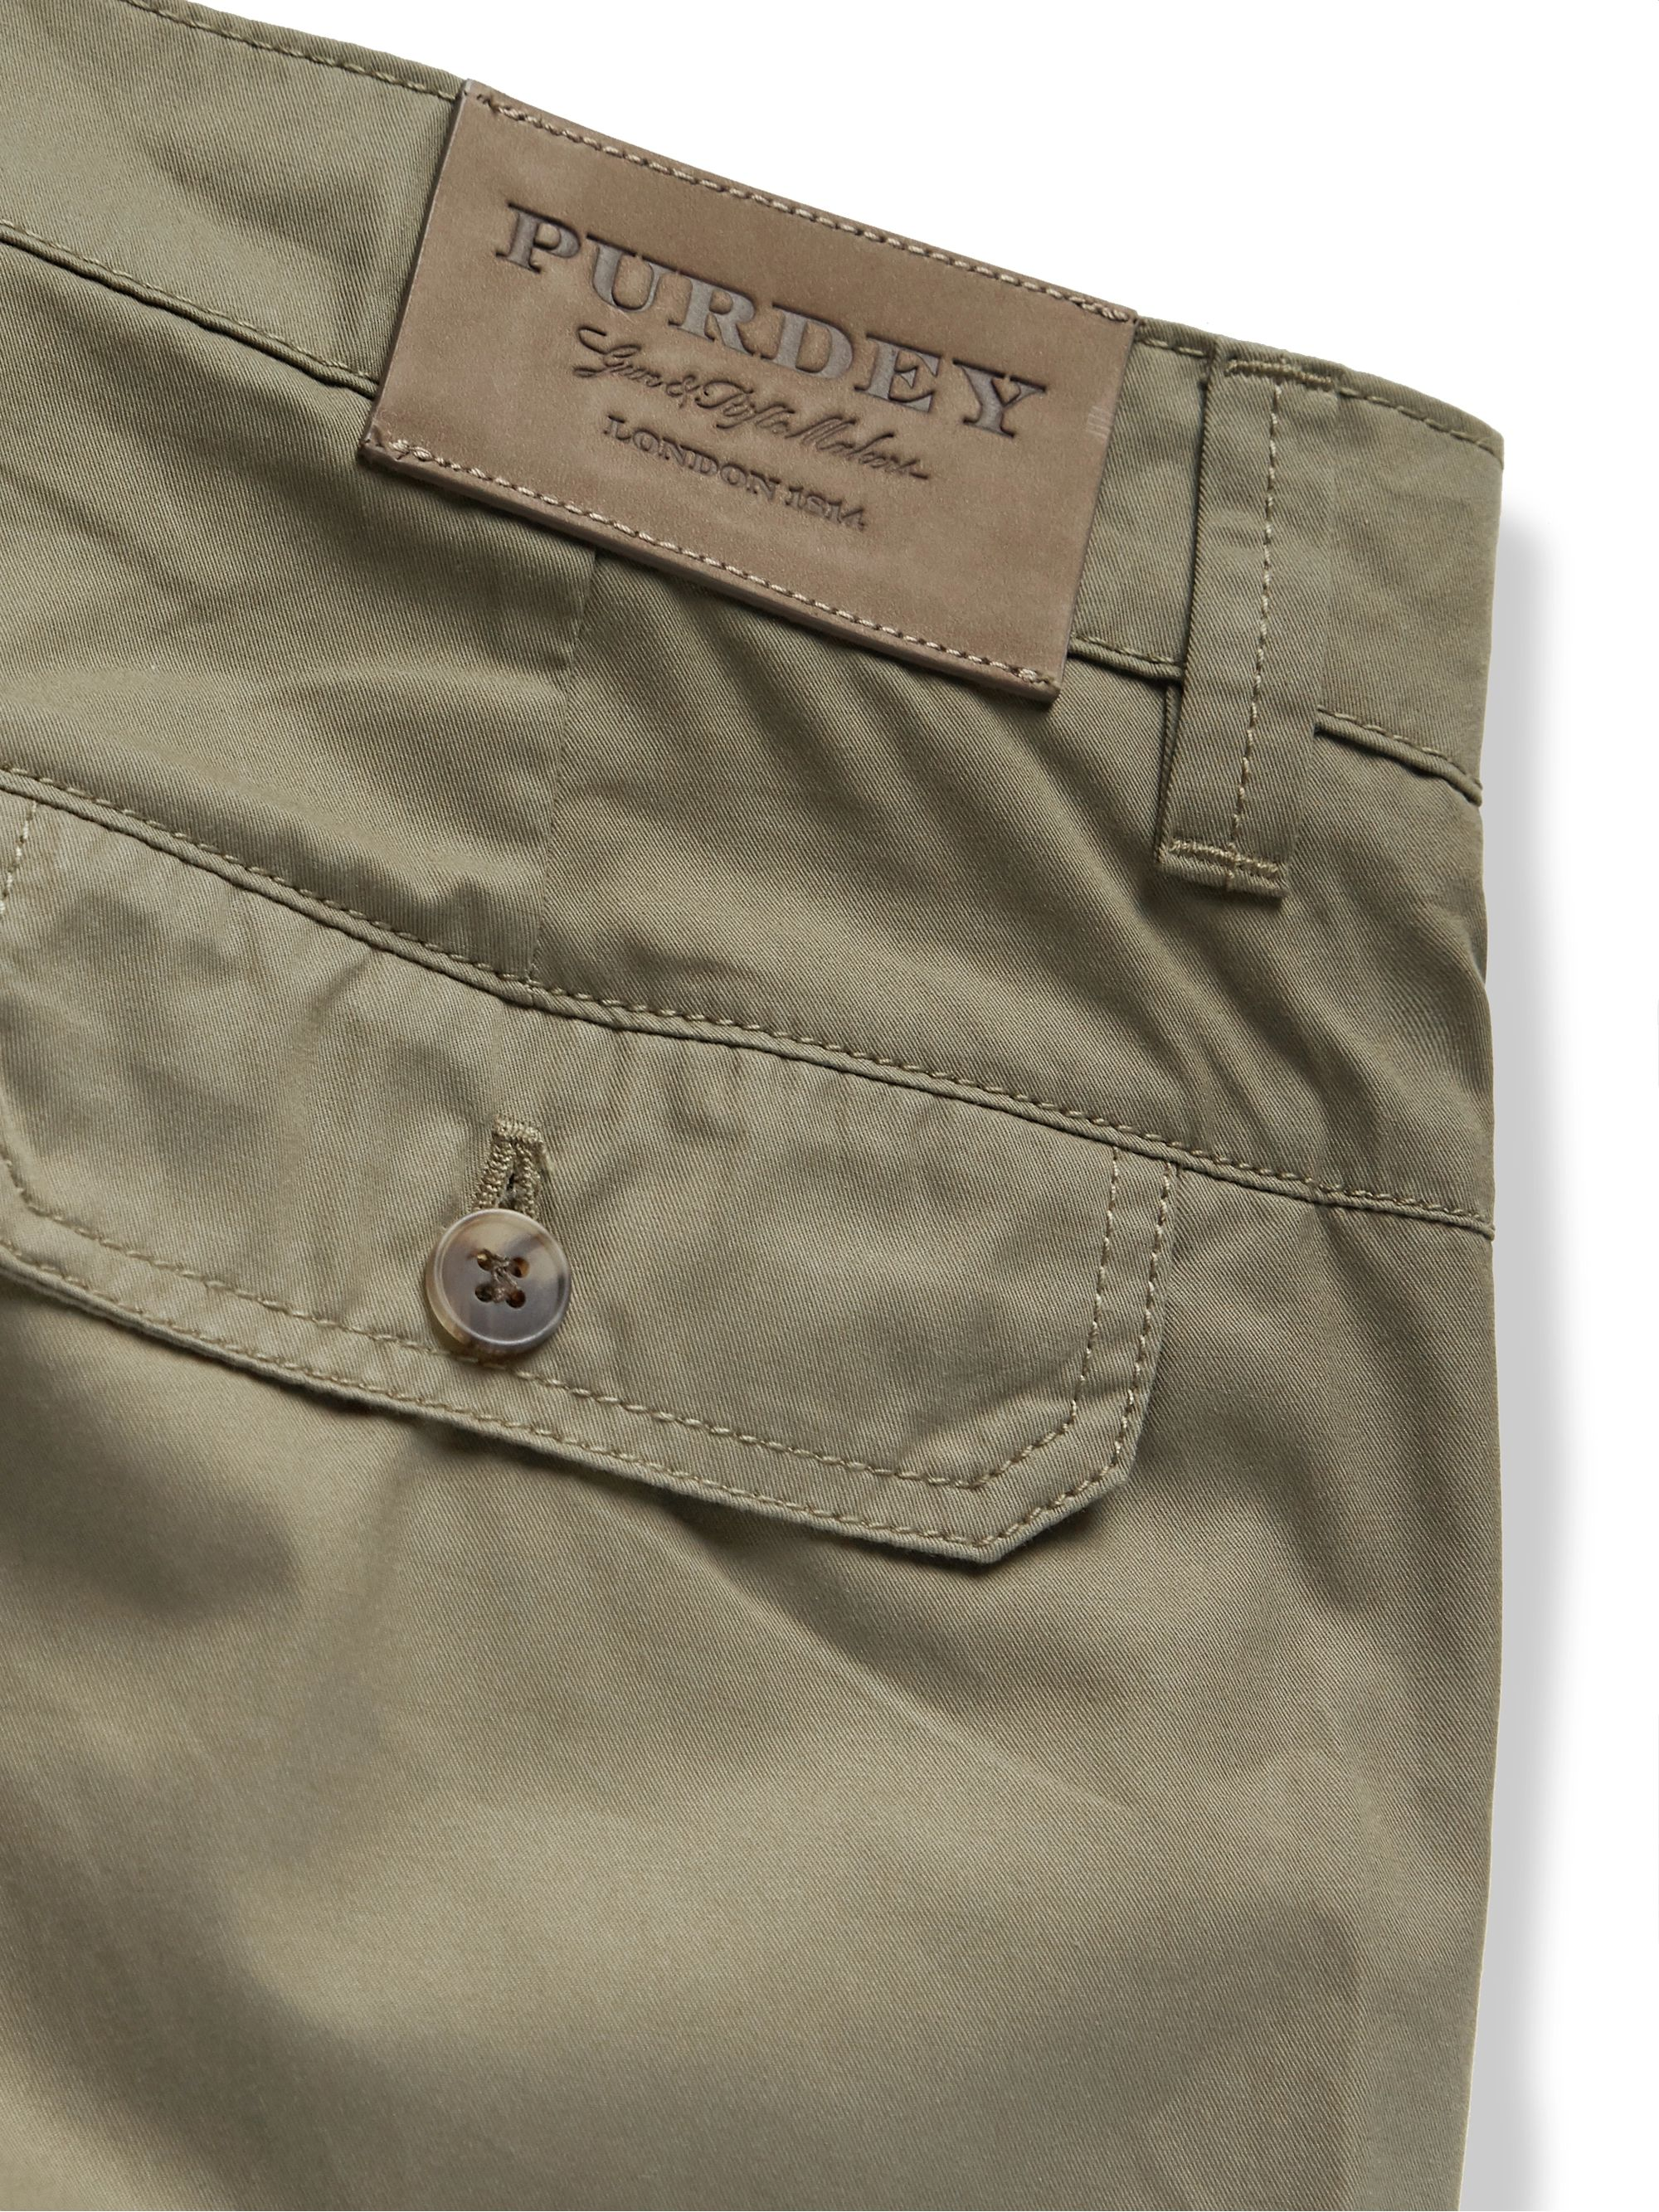 Army Green Cotton-ventile Cargo Shorts | Purdey